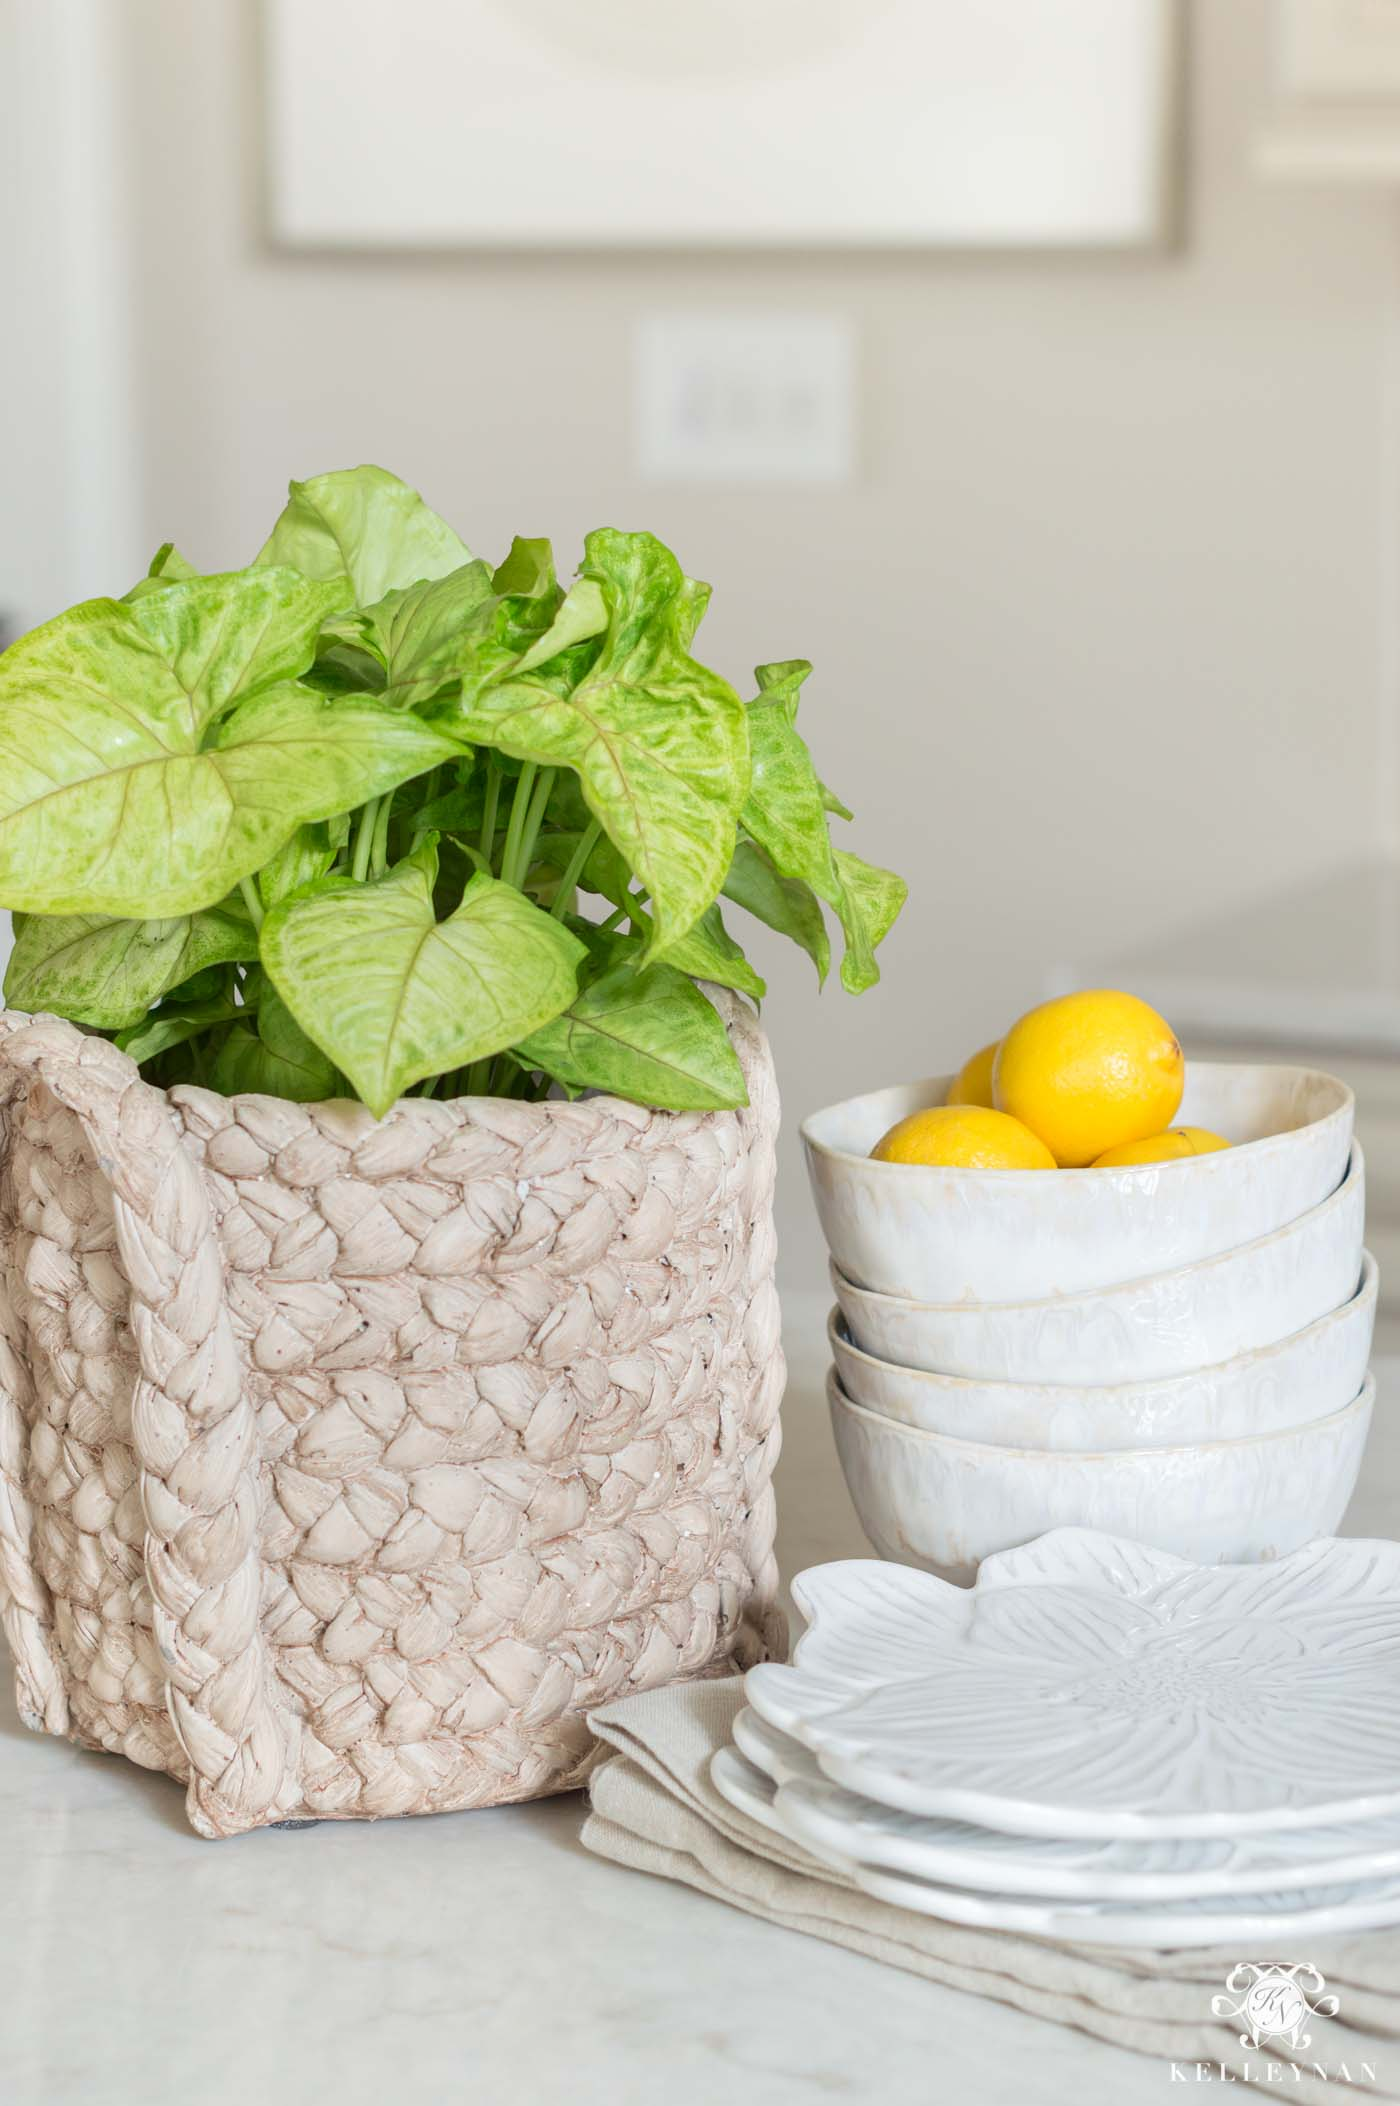 Kitchen decorating ideas for spring with plants and fruit